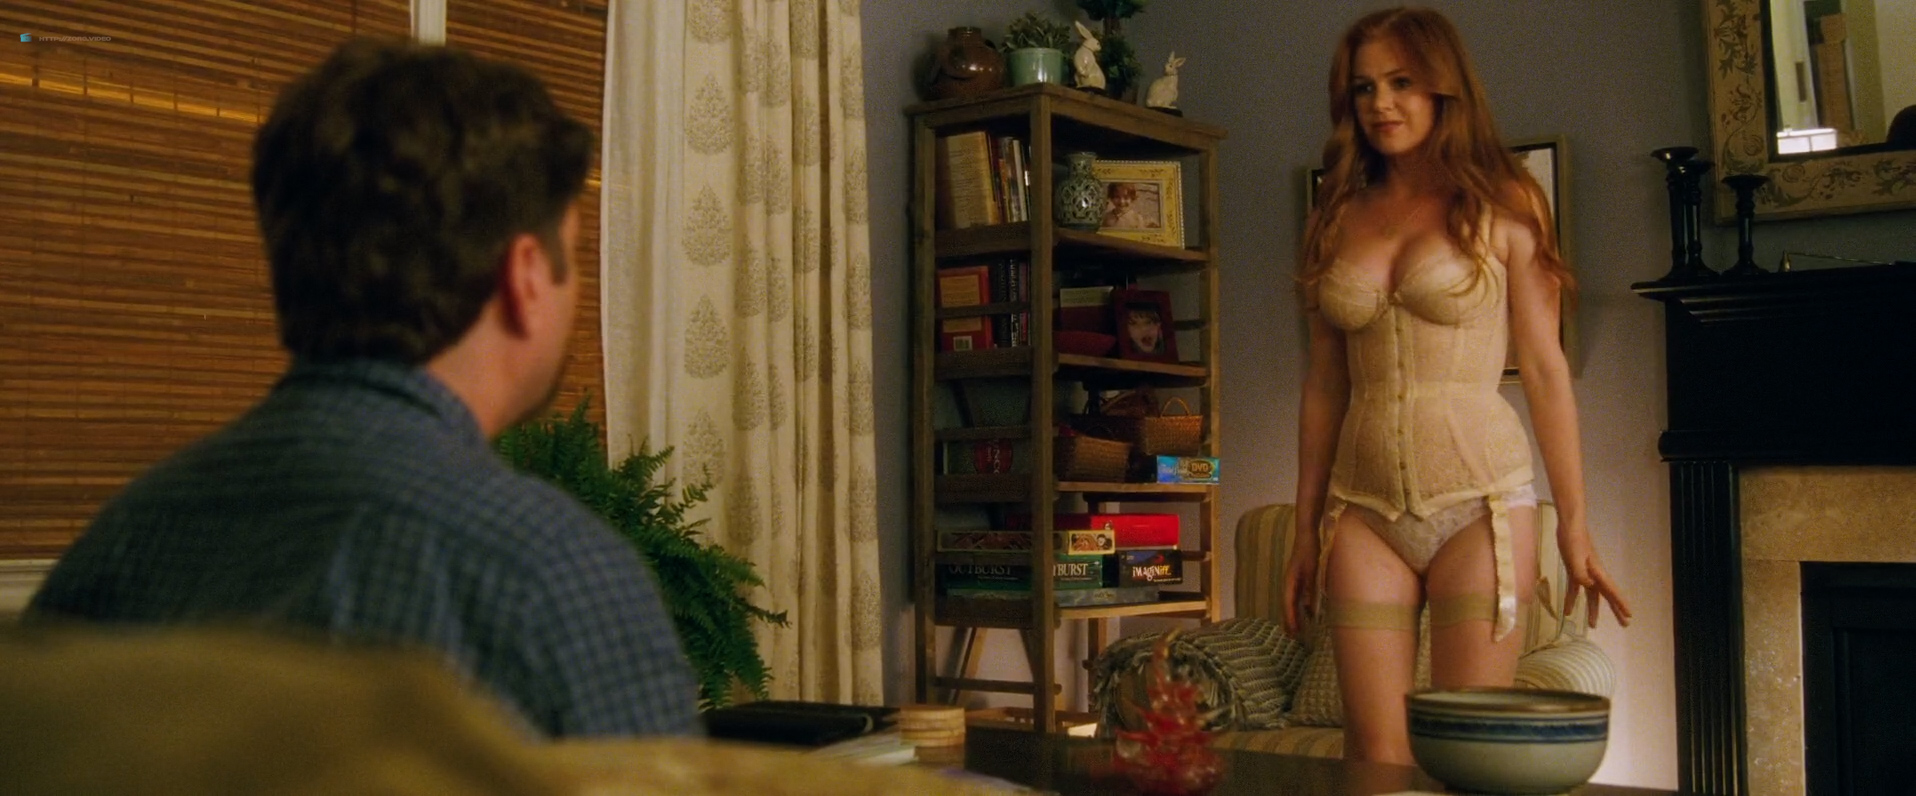 Isla-Fisher-hot-and-sexy-and-Gal-Gadot-hot-in-lingerie-Keeping-Up-with-the-Joneses-2016-HD-1080p-Web-Dl-9.jpg